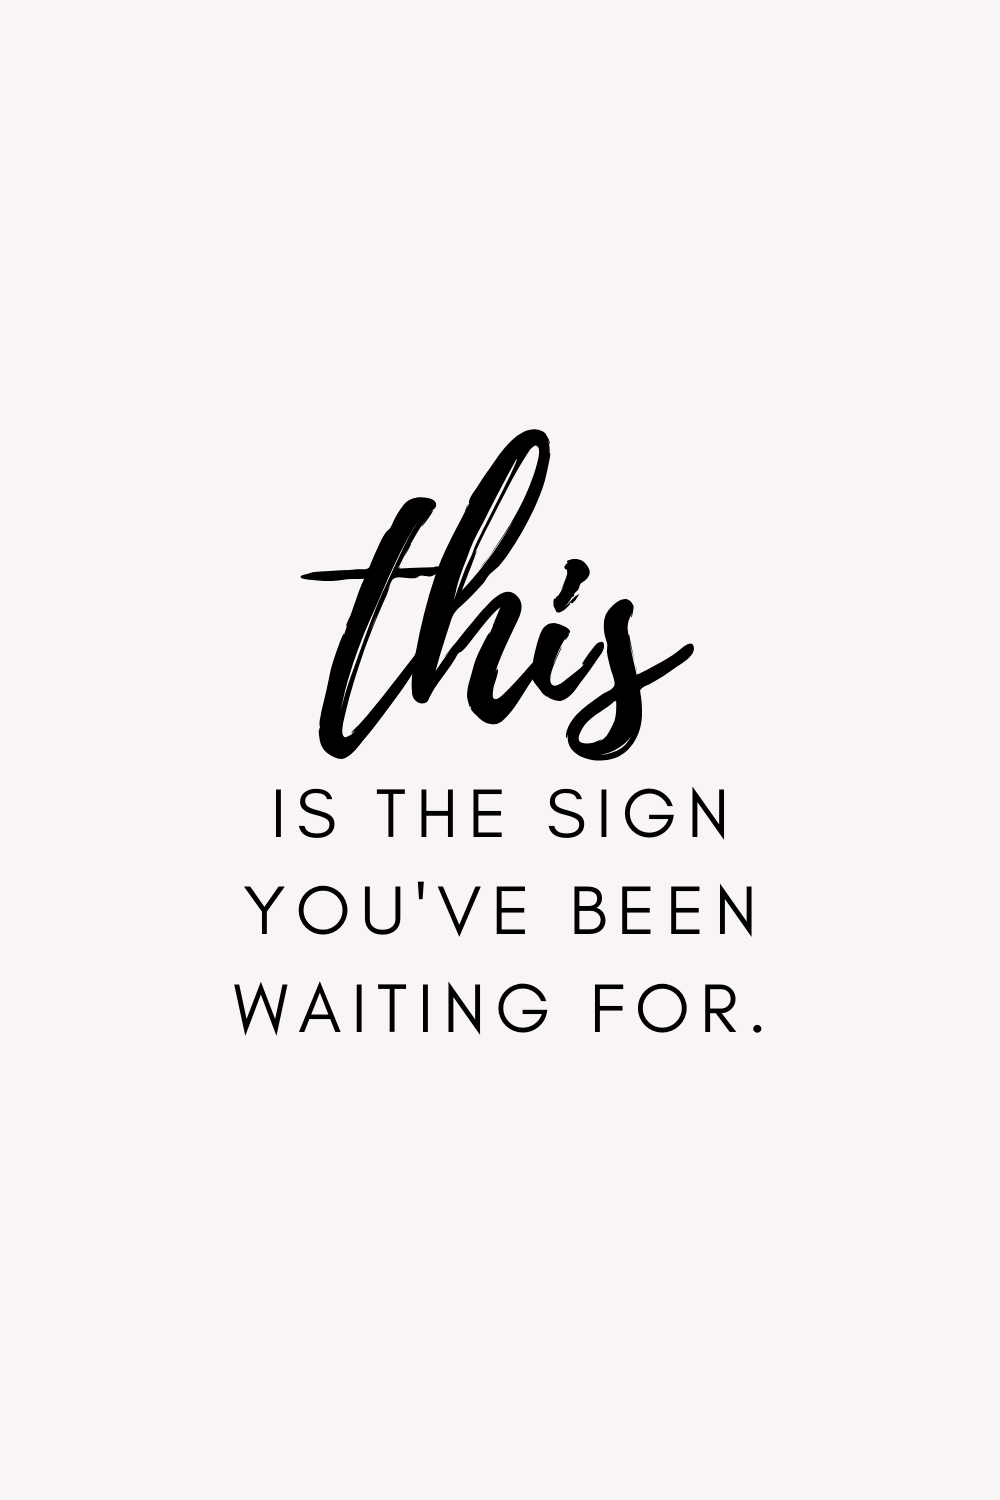 Are You Waiting For A Sign Reality Quotes Wise Quotes Inspirational Quotes For Women